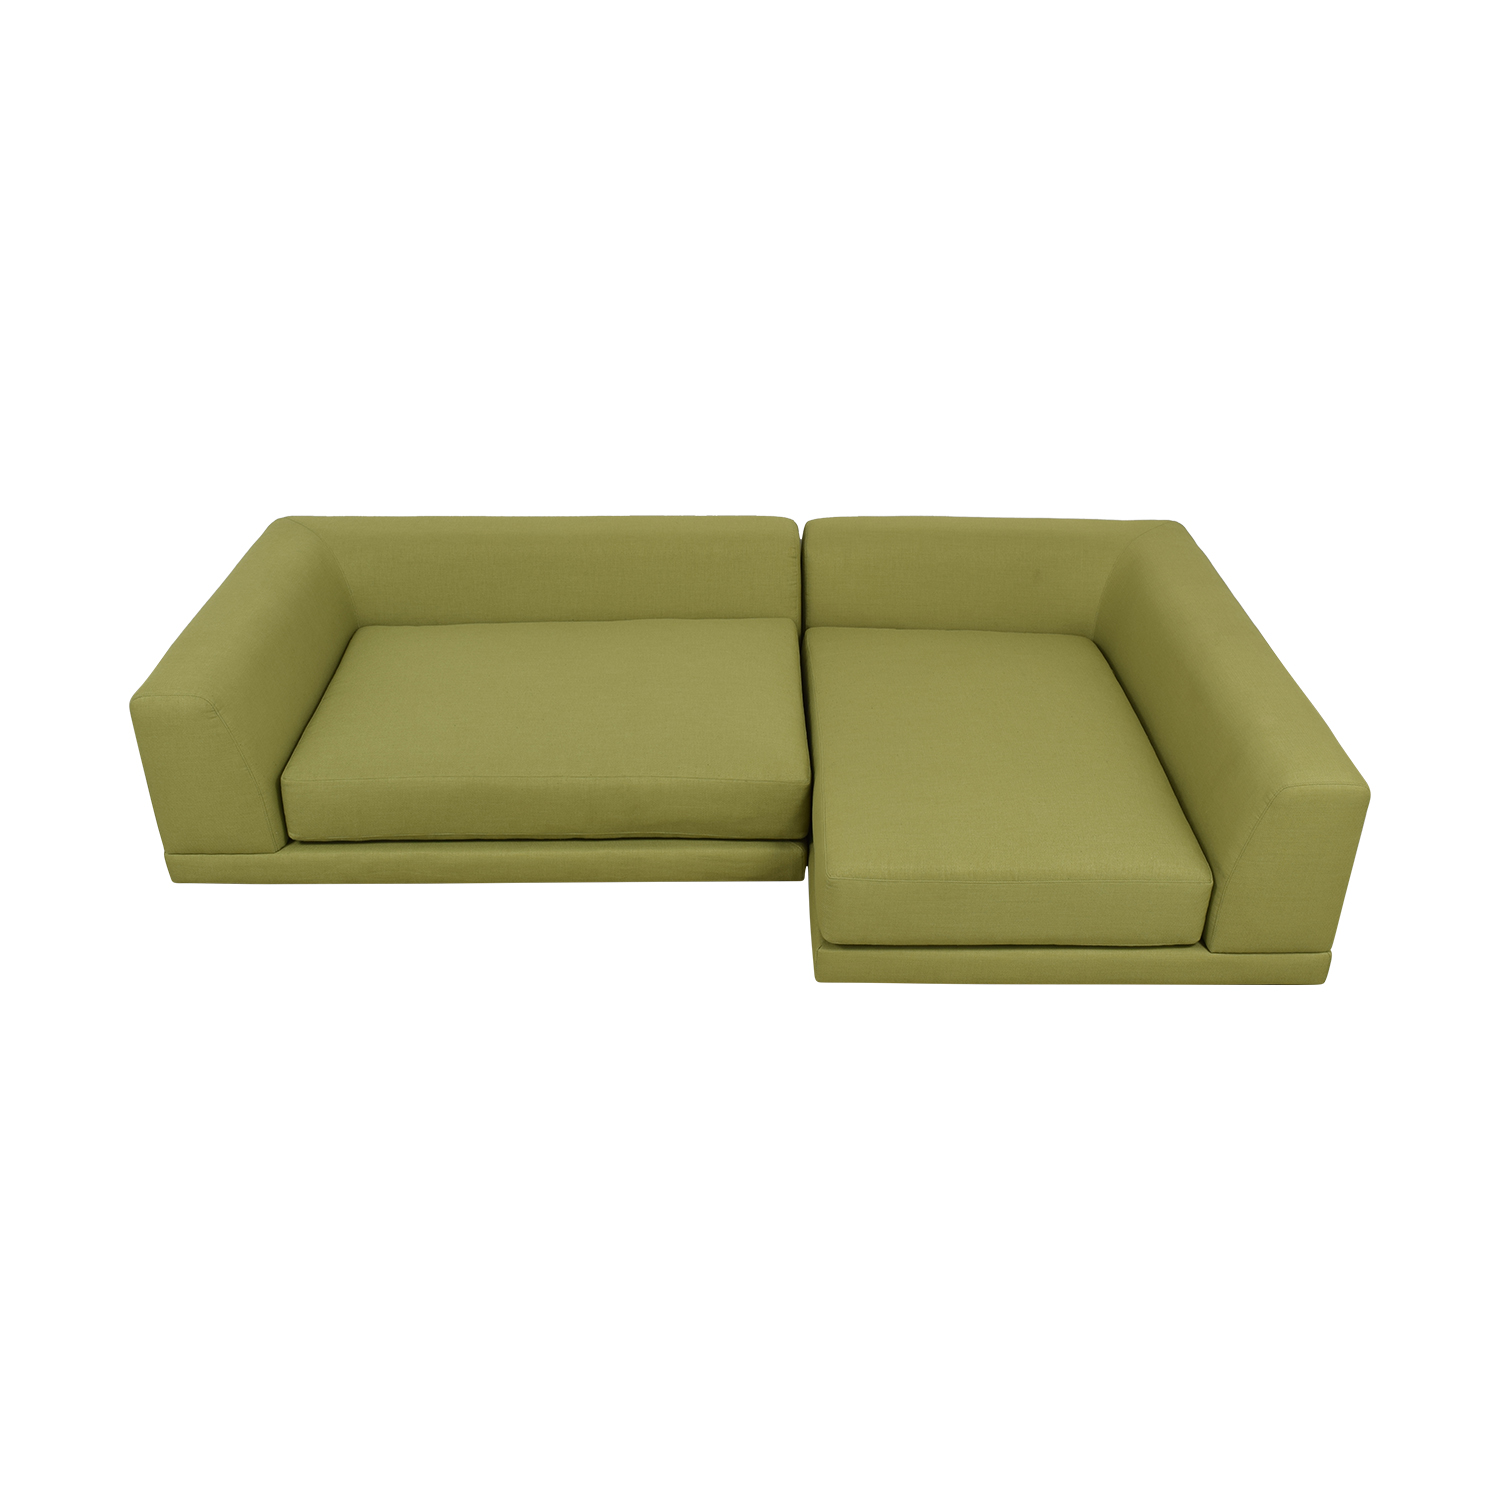 shop CB2 CB2 UNO Green L-Shaped Sectional online